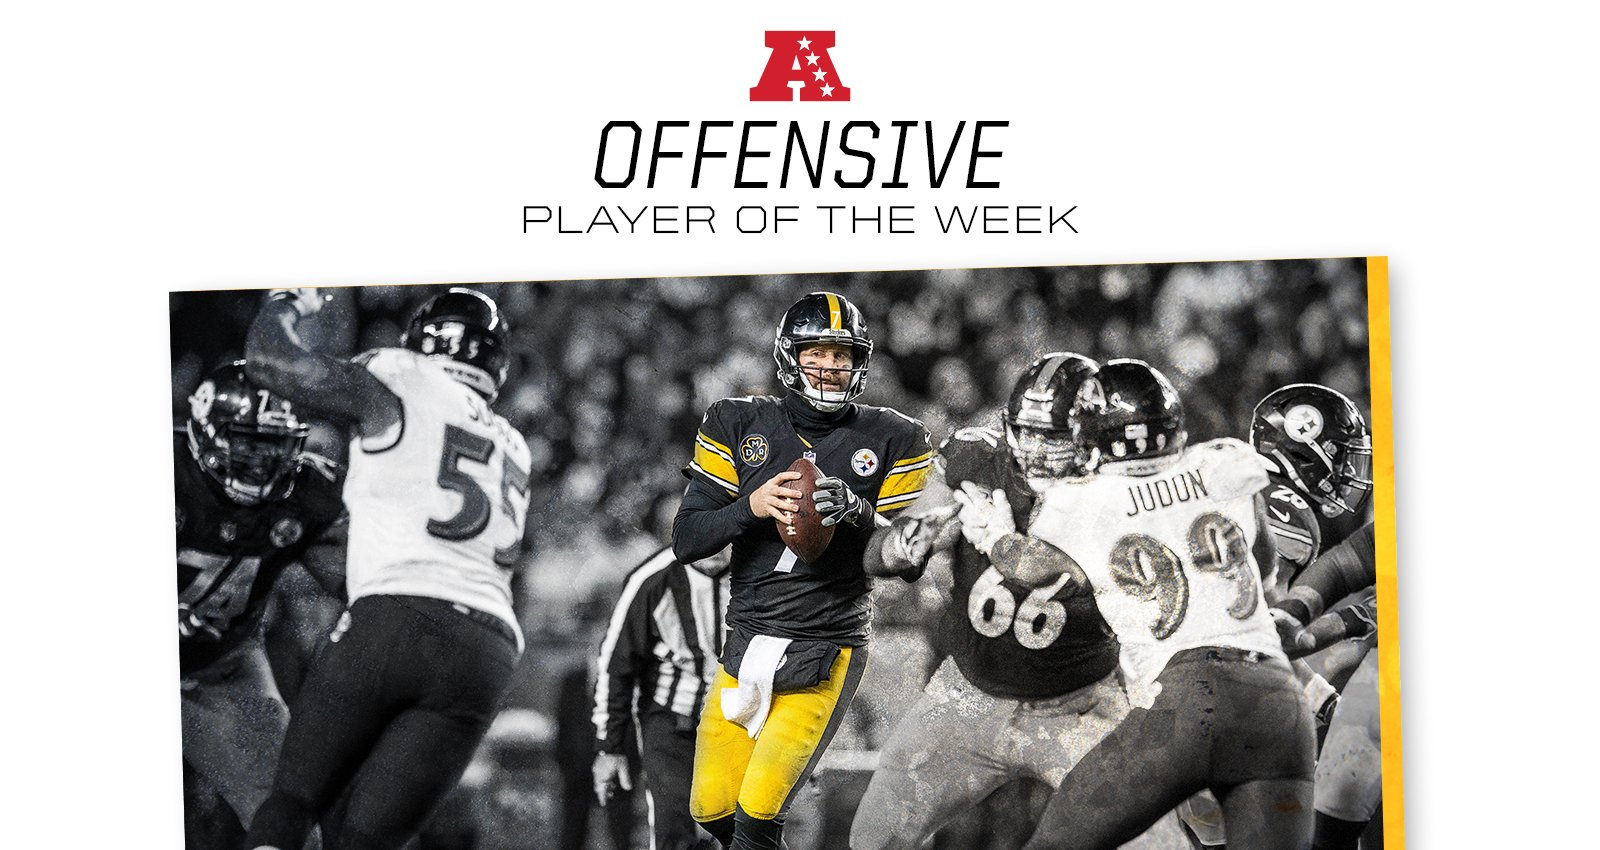 Ben Roethlisberger has been named AFC Offensive Player of the Week. #ProBowlVote  MORE: https://t.co/s7ydOfH9kR https://t.co/polvAe7rRf